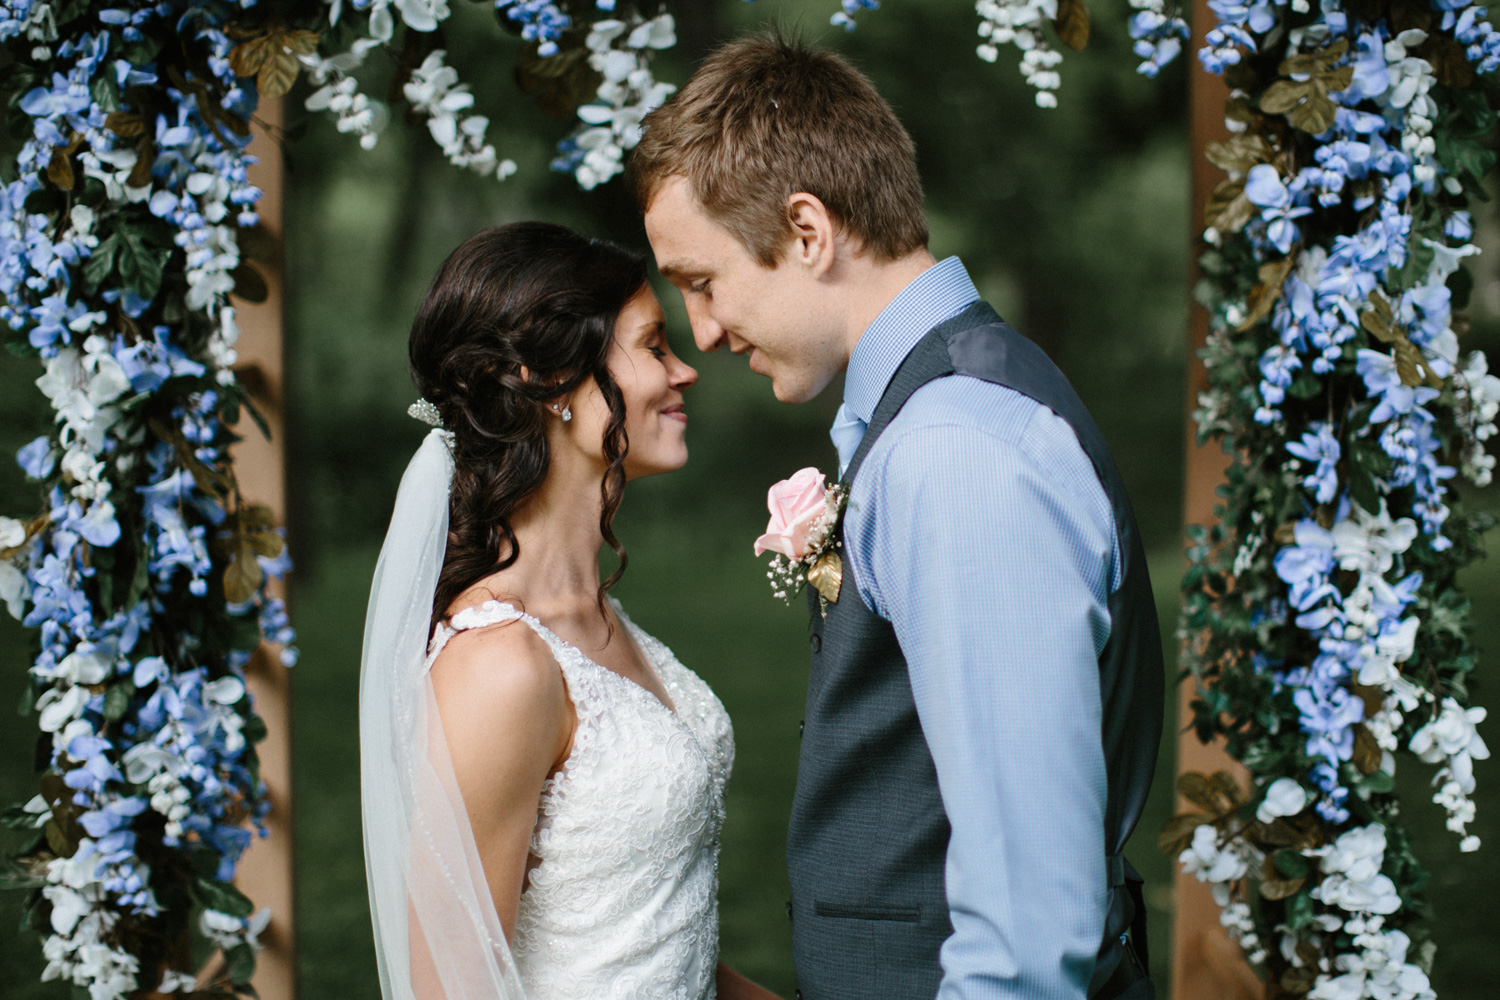 Outdoor_Wedding_SiouxFalls_MaryJoWegnerArboretum_Photographer_Calli&Jon_105.jpg